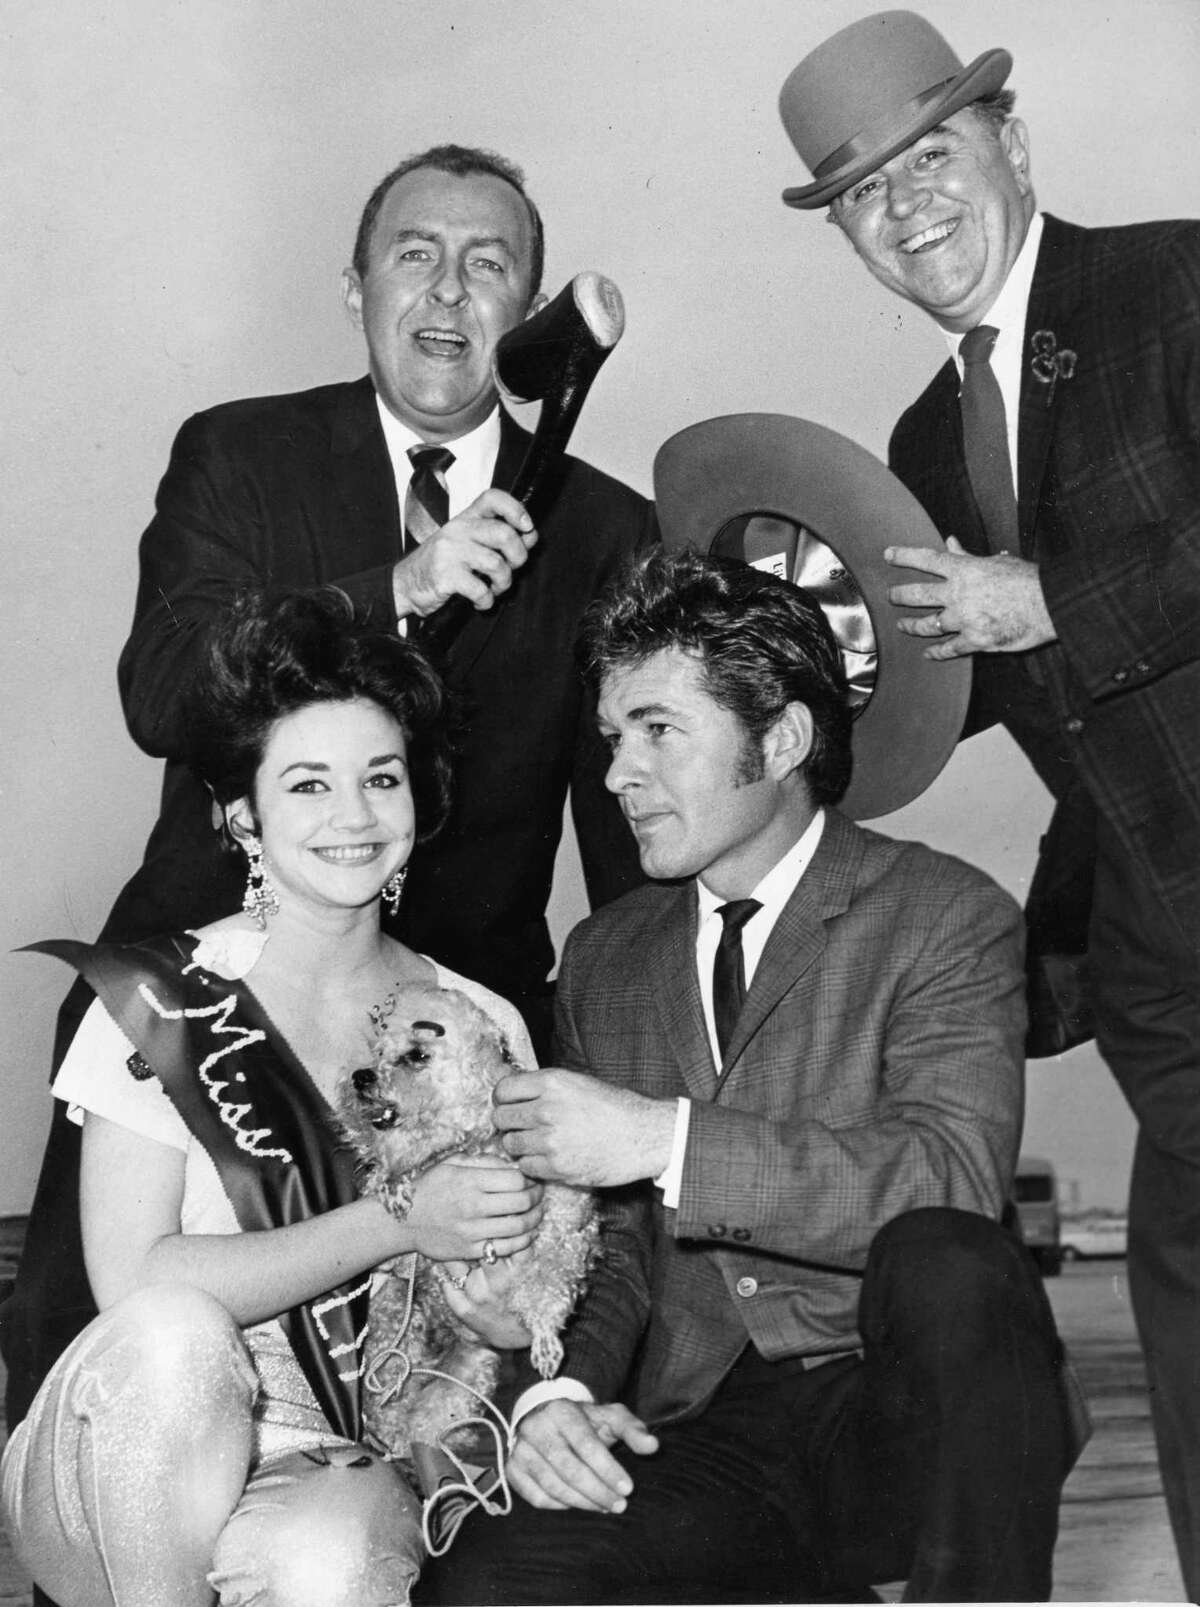 From the March 18, 1963, Houston Post: KPRC's Tim and Bob spoof with Miss Sandy Aycock and Gary Clarke of television fame, seated, at Houston's International Airport after Clarke arrived by plane from Los Angeles to join the others in the Saint Patrick's Day parade at 10 a.m. Monday in downtown Houston. Miss Aycock, 17, has been elected